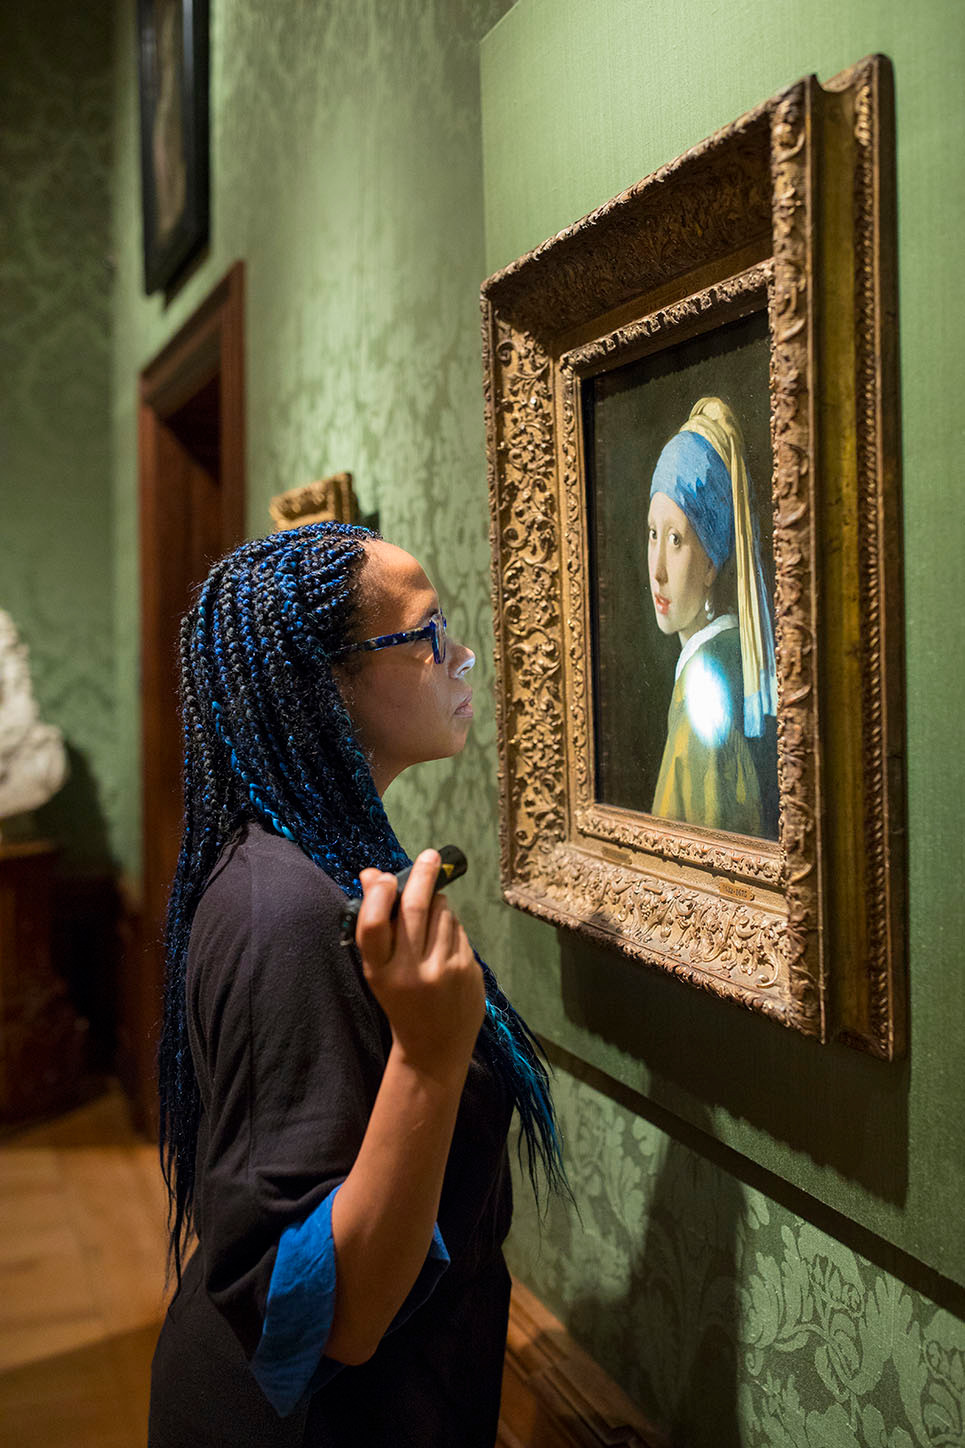 Head researcher Abbie Vandivere examines Girl with a Pearl Earring.